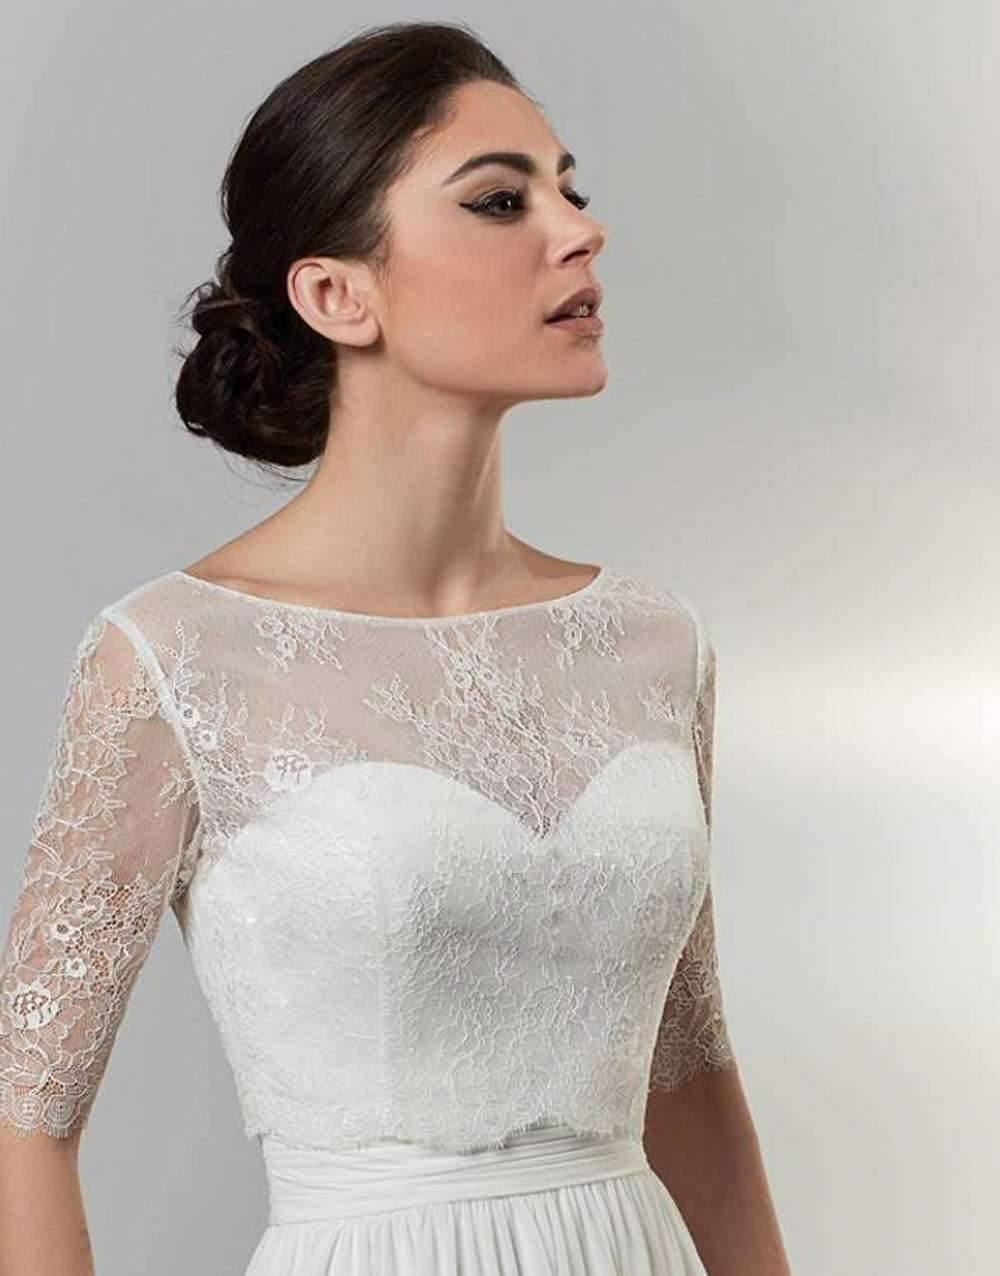 UK12 - NADIA - SALE - Adore Bridal and Occasion Wear